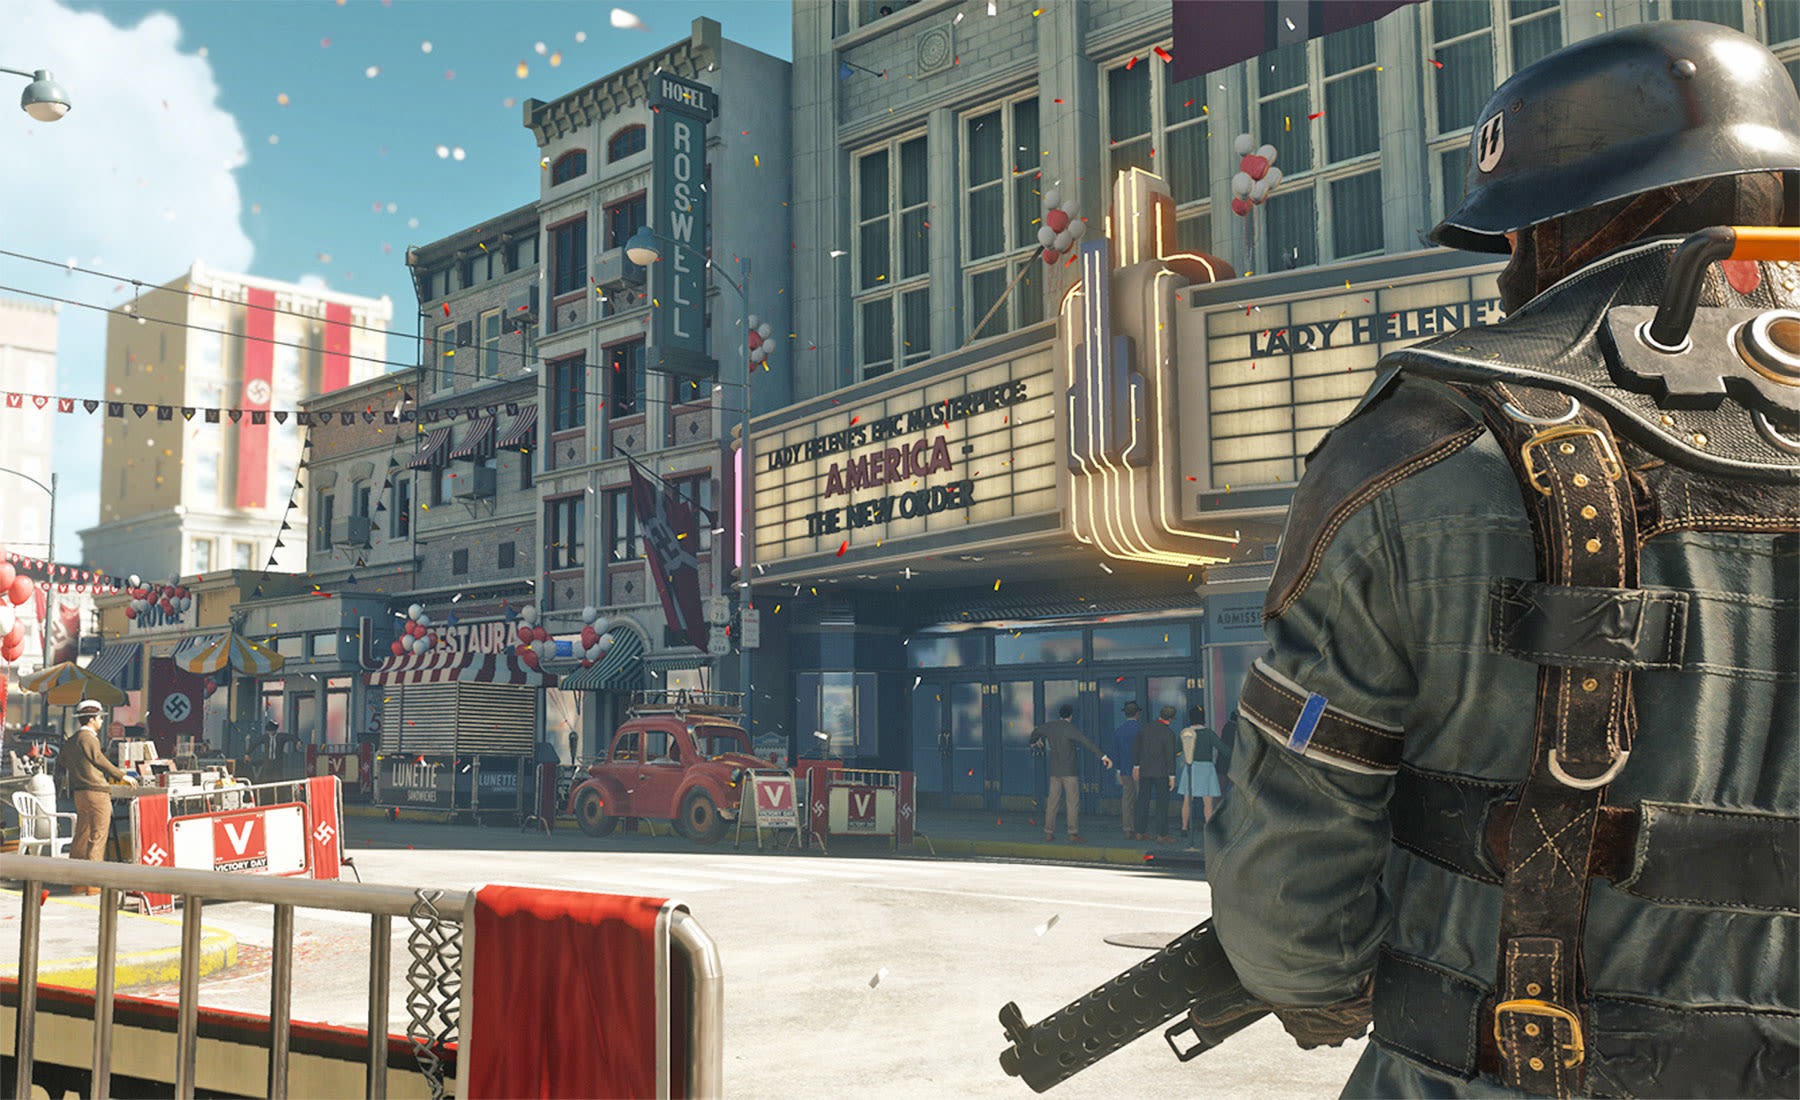 wolfenstein 2 and evil within 2 will support 4k on xbox one x